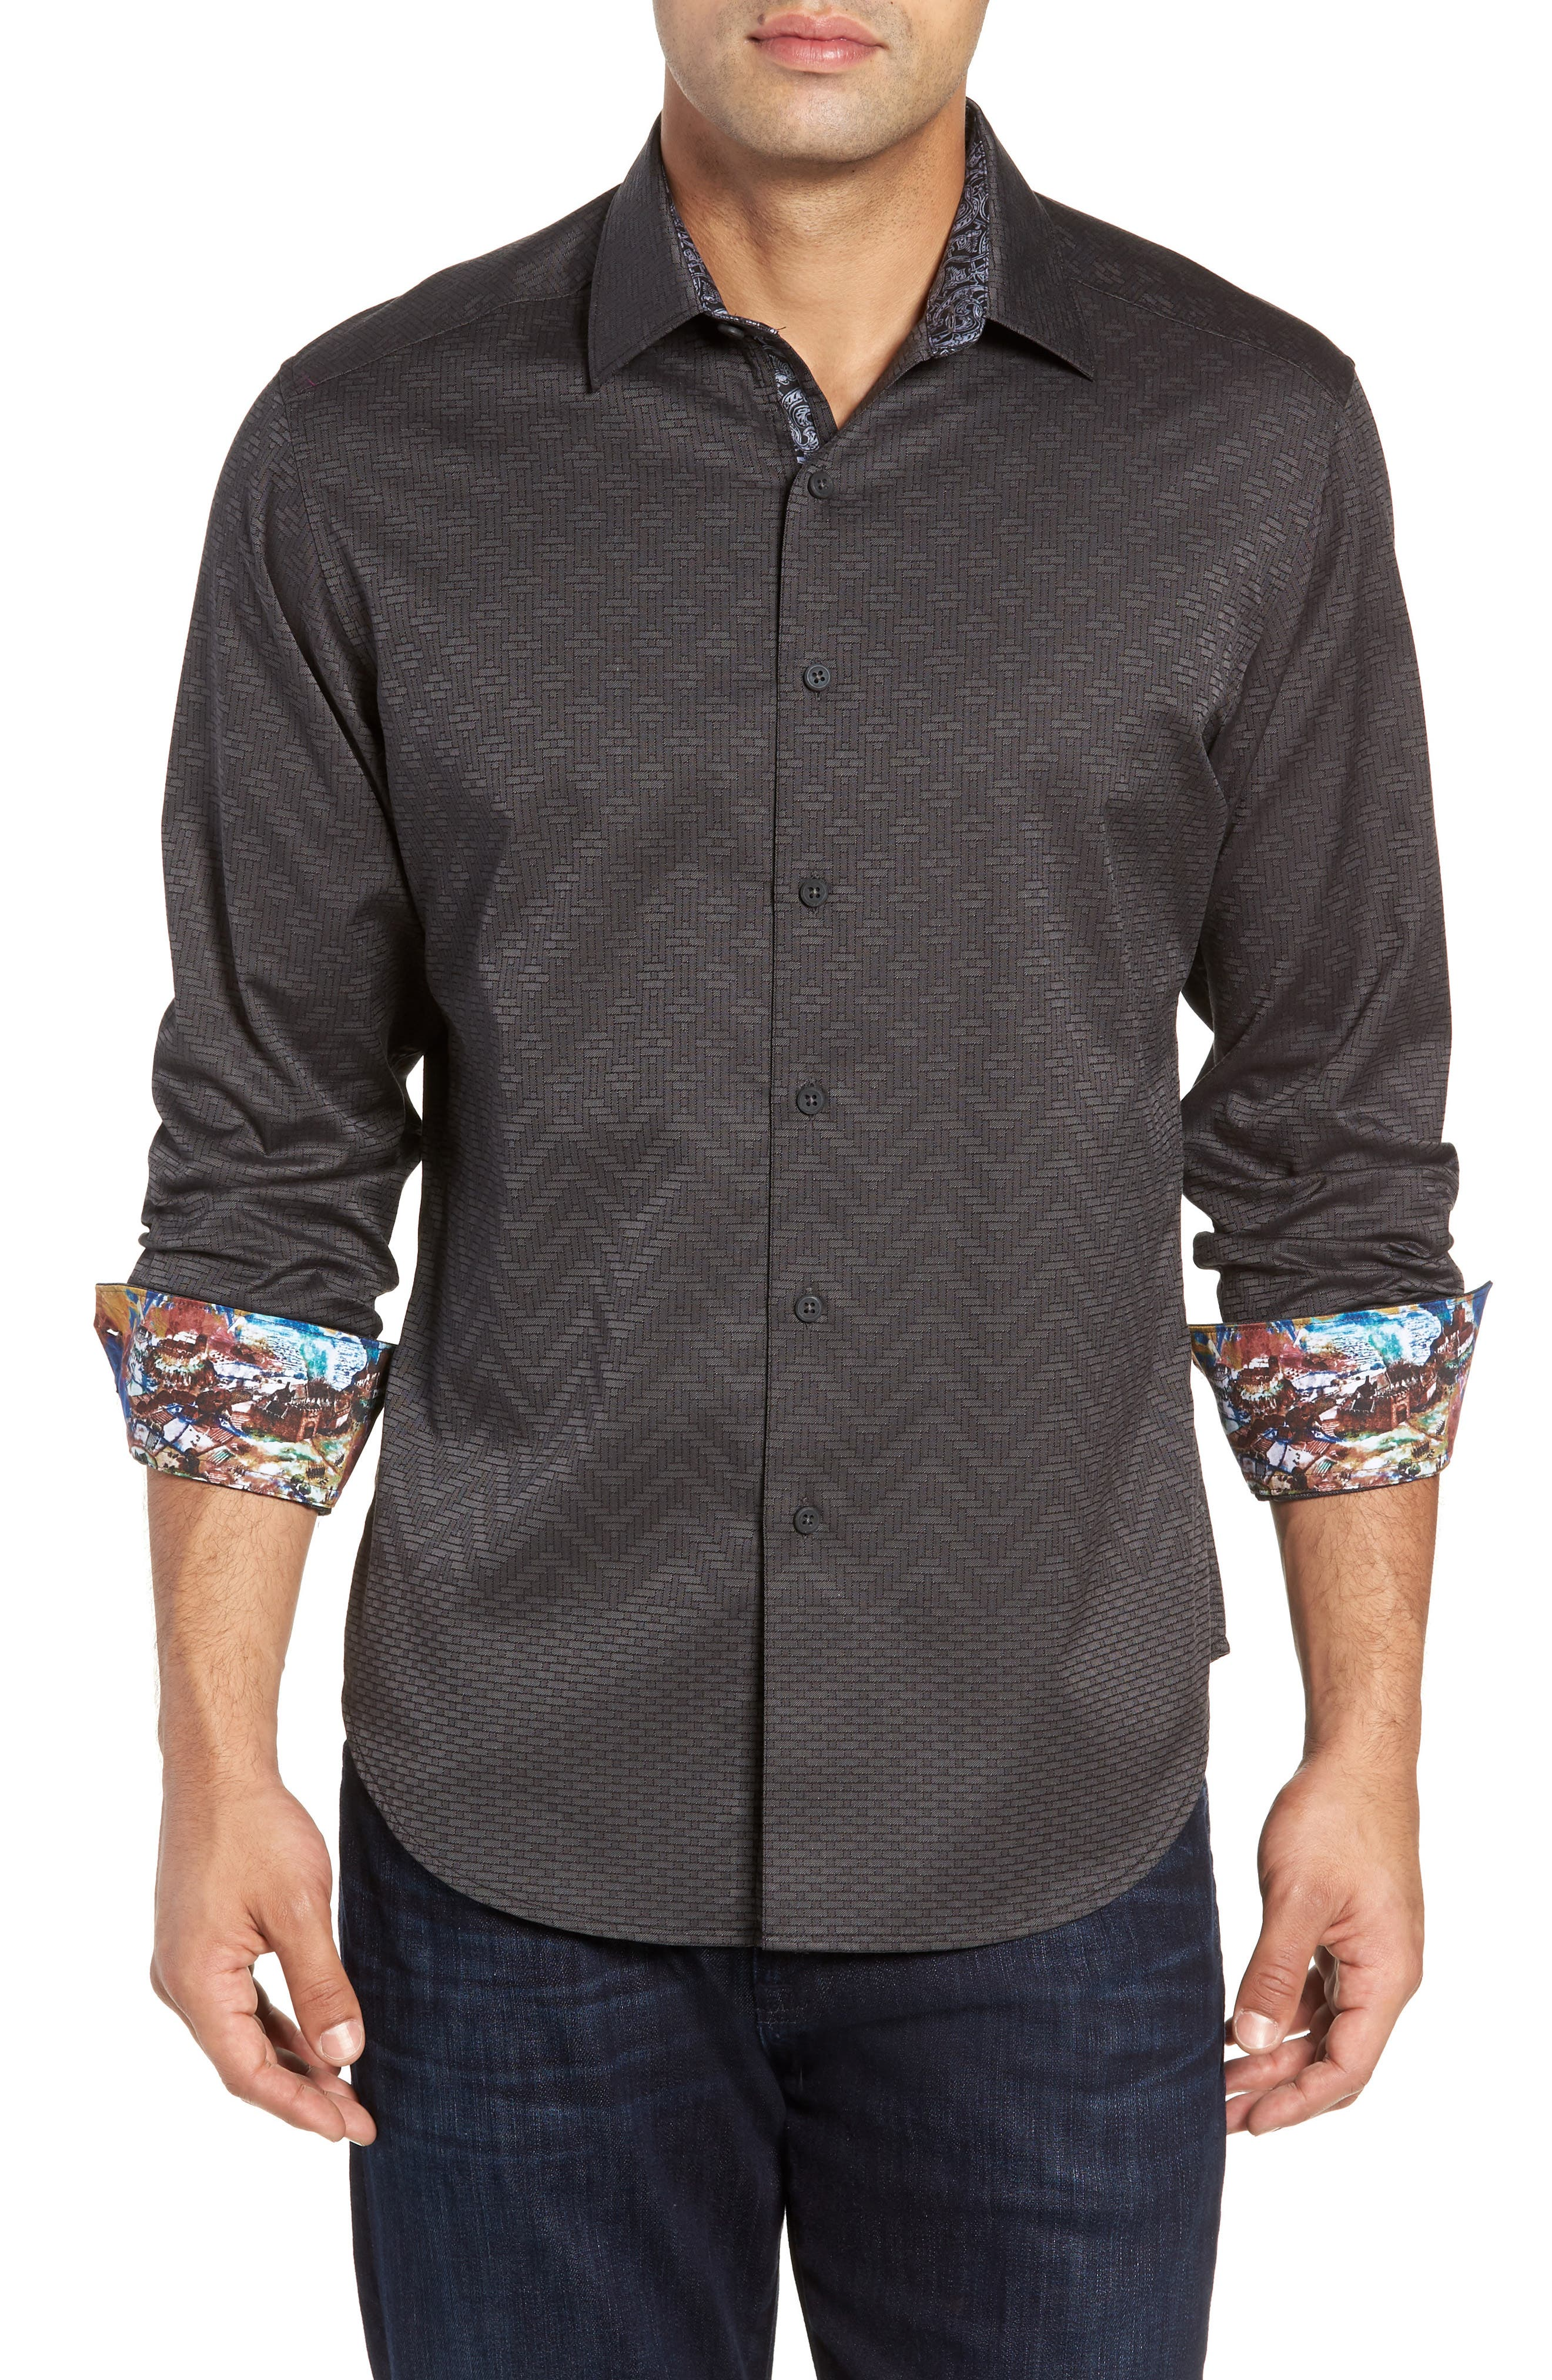 Wallace Classic Fit Sport Shirt,                             Main thumbnail 1, color,                             GREY